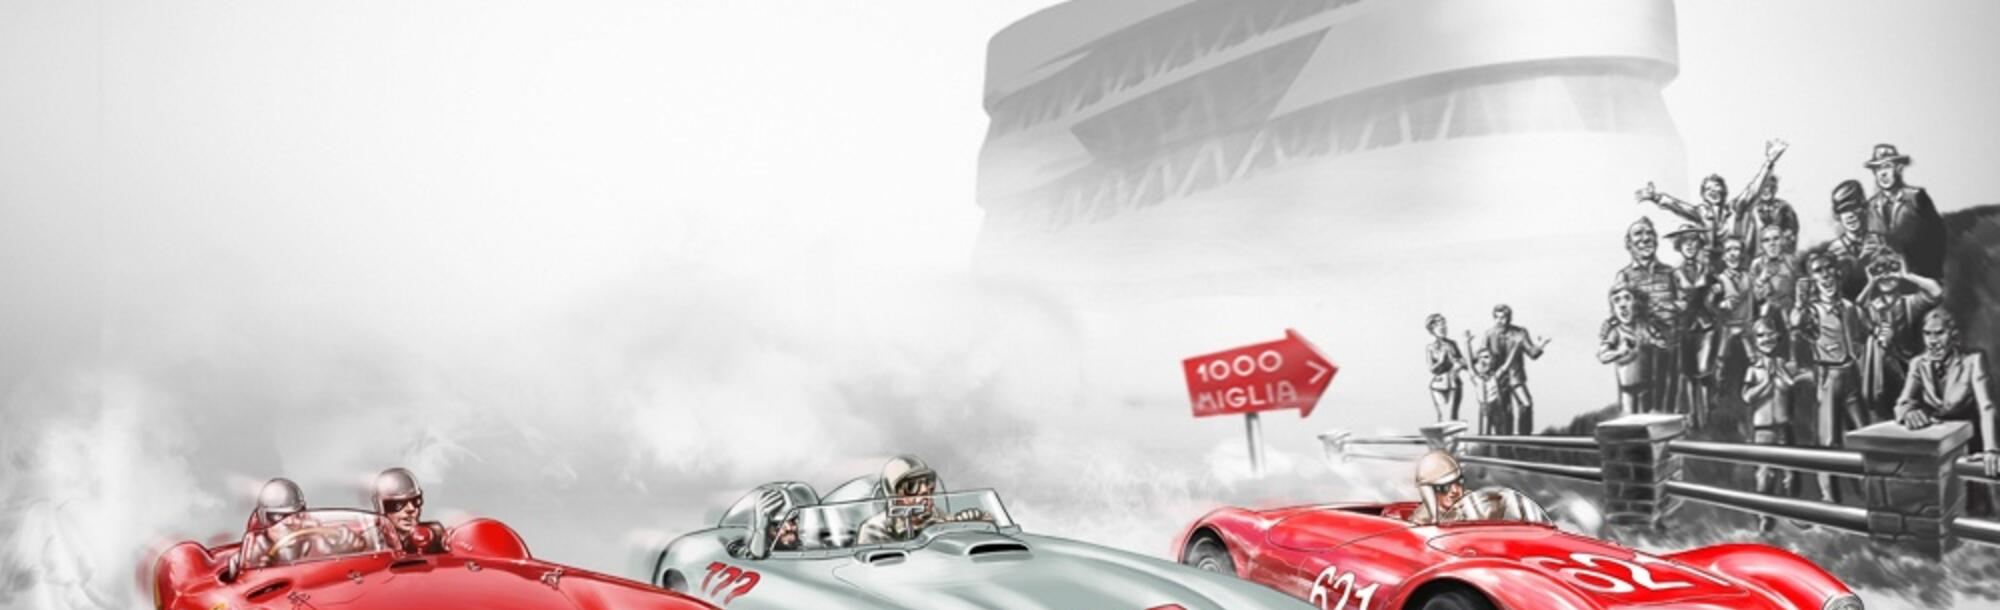 MILLE MIGLIA, THE MOST BEAUTIFUL RACE IN THE WORLD